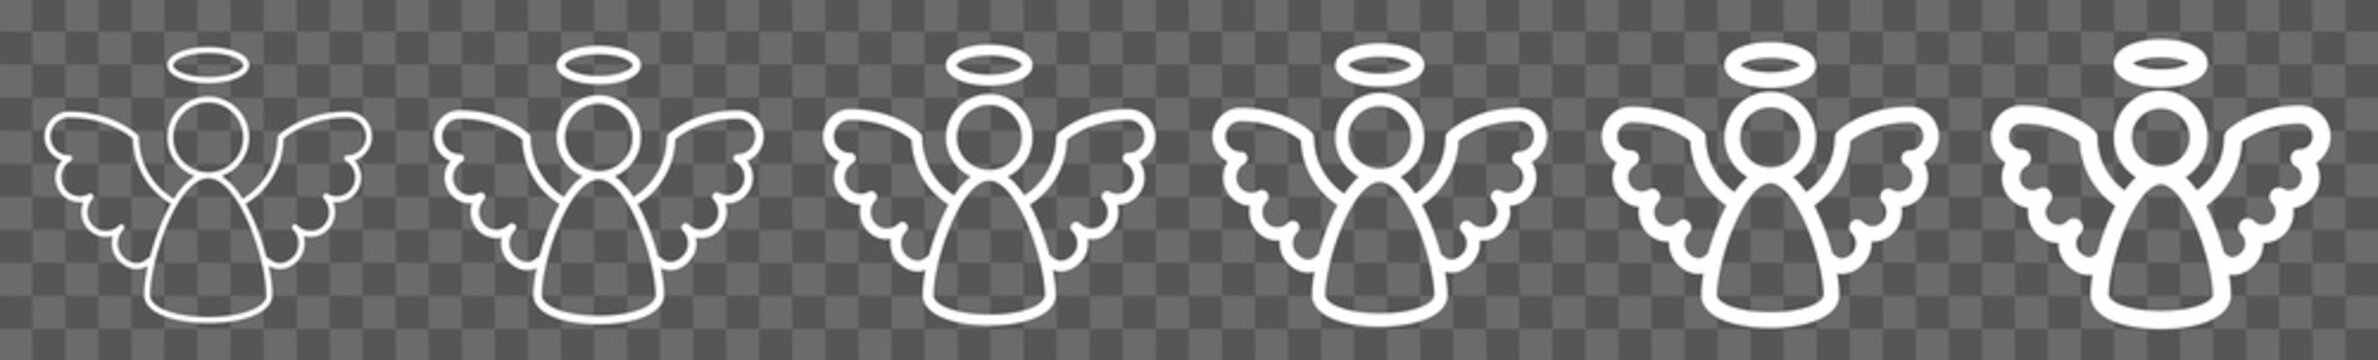 Angel Icon White | Angels Illustration | Christmas Symbol | Wings Logo | Halo Sign | Isolated Transparent | Variations